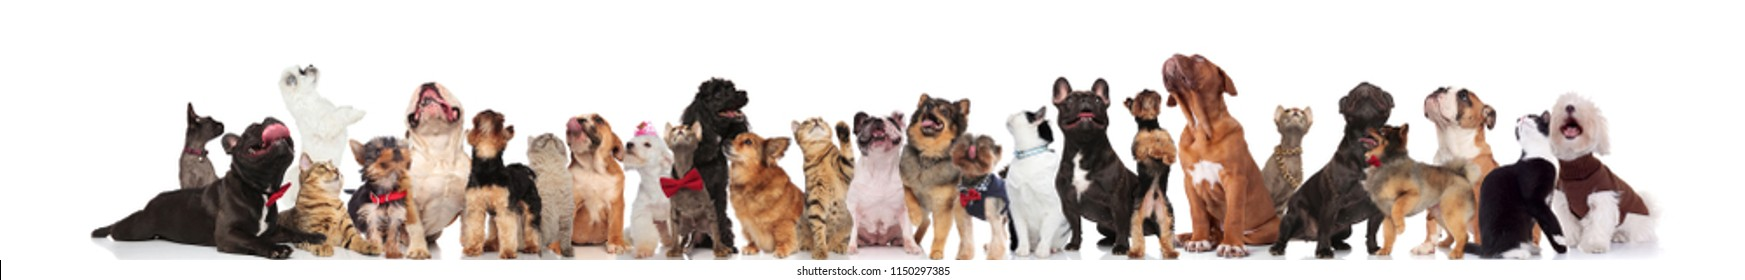 large team of curious pets wearing bowties and colorful collars looking up while standing and sitting on white background